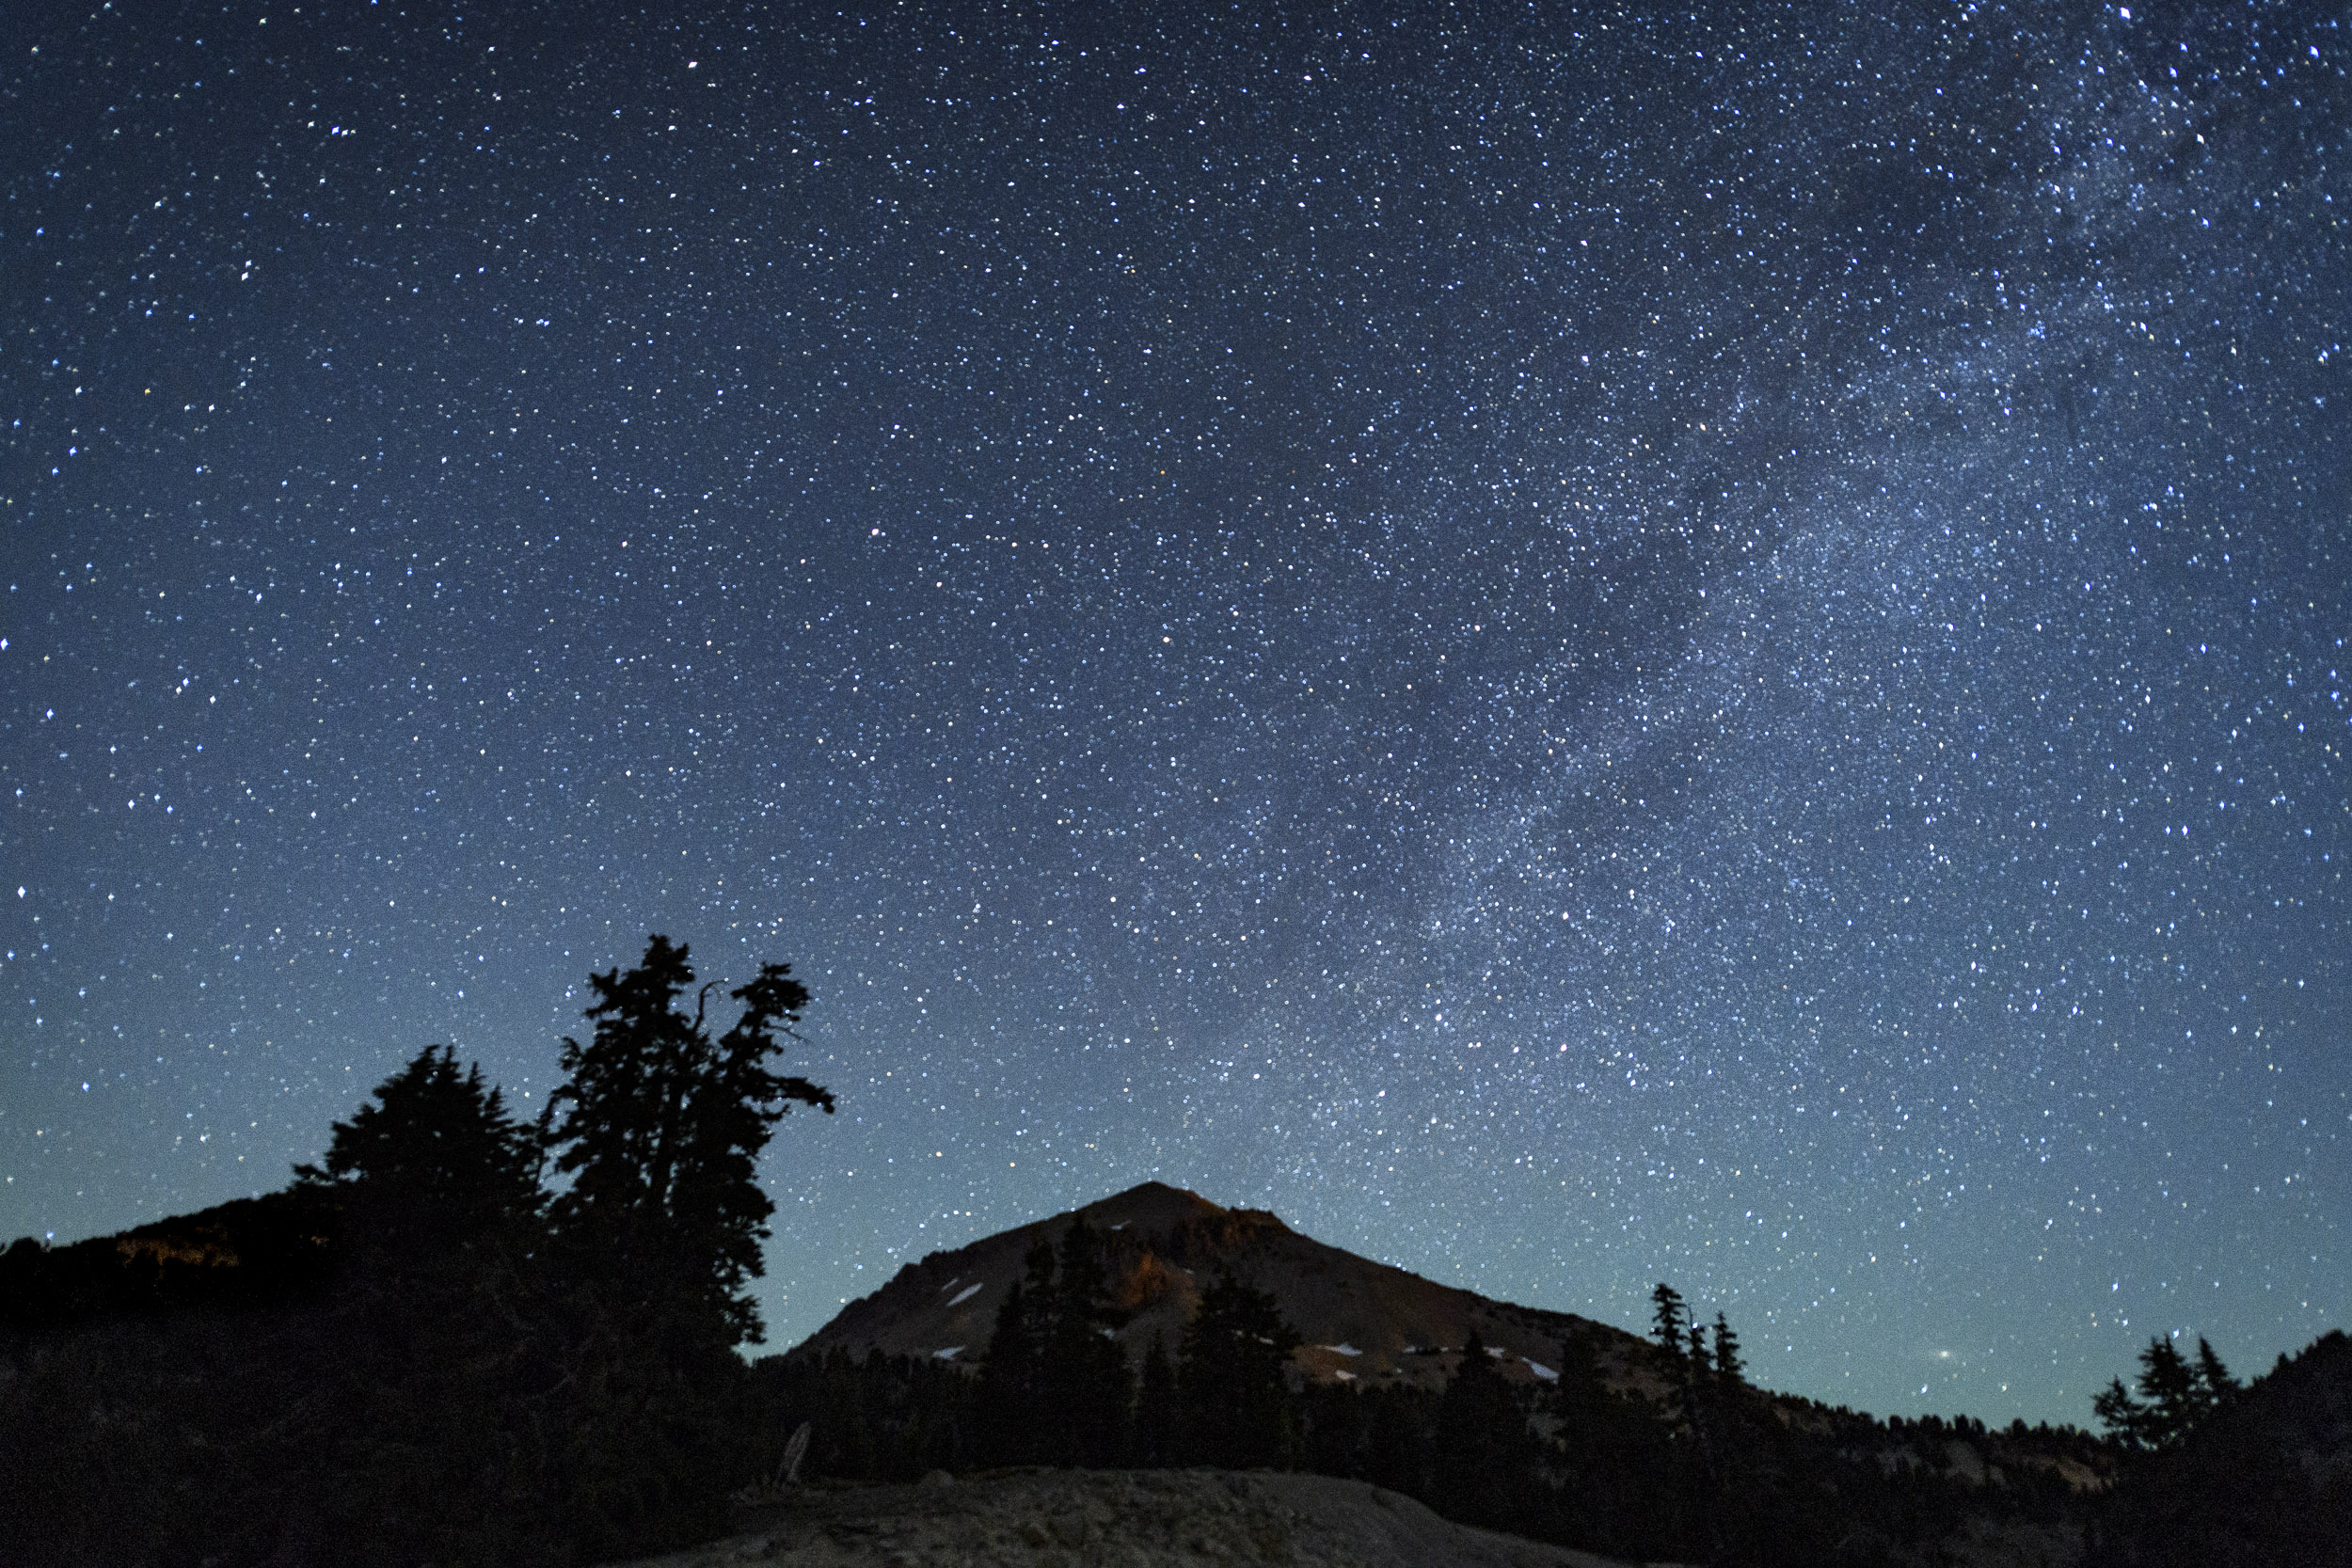 Figure 12. Tail end of the Milky Way over Lassen Peak. Nikon D5 with a Nikon 14-24mm f/2.8 lens. 20 seconds, f/2.8, ISO 8000.